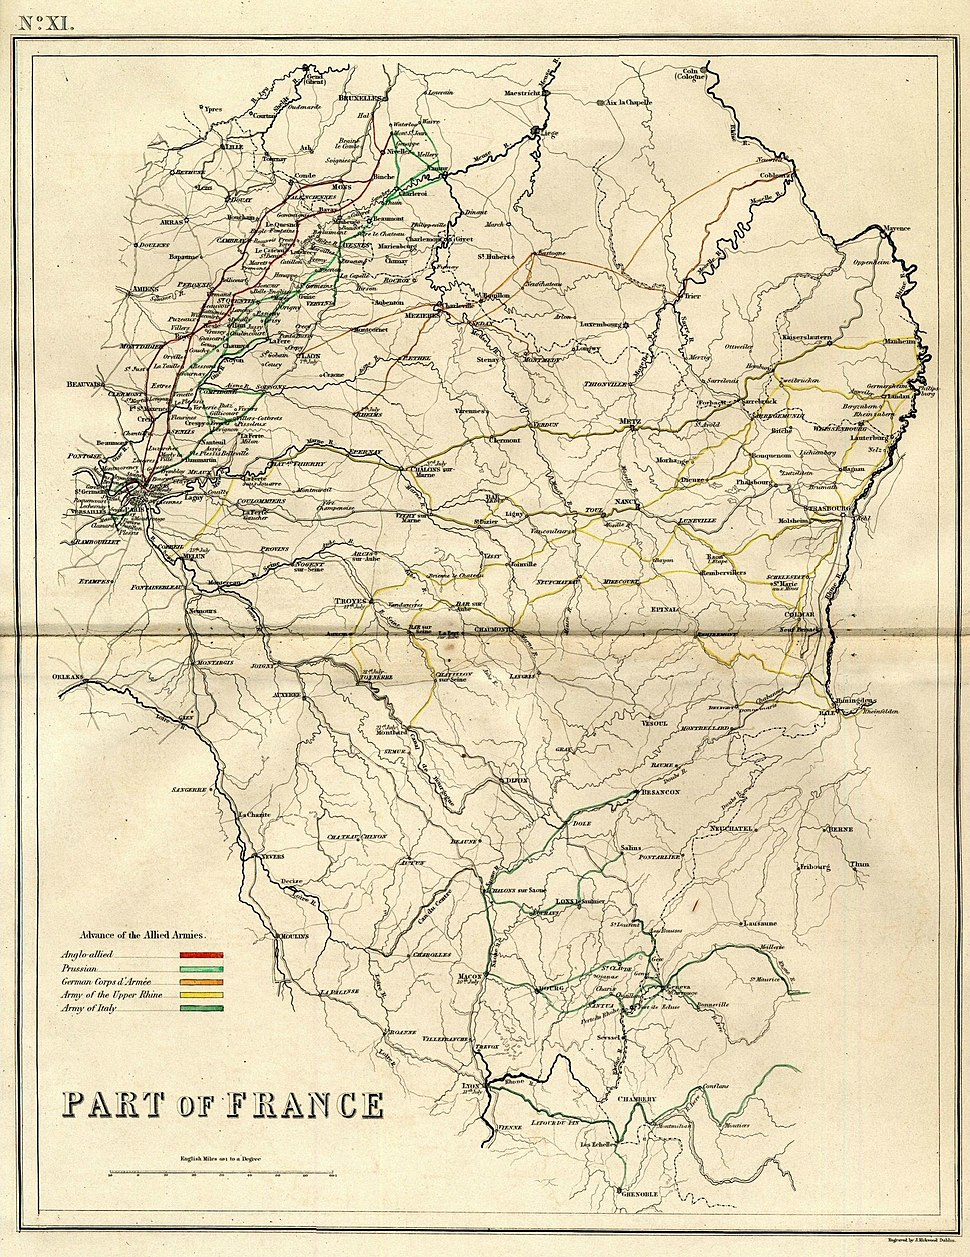 Invasion of France in 1815